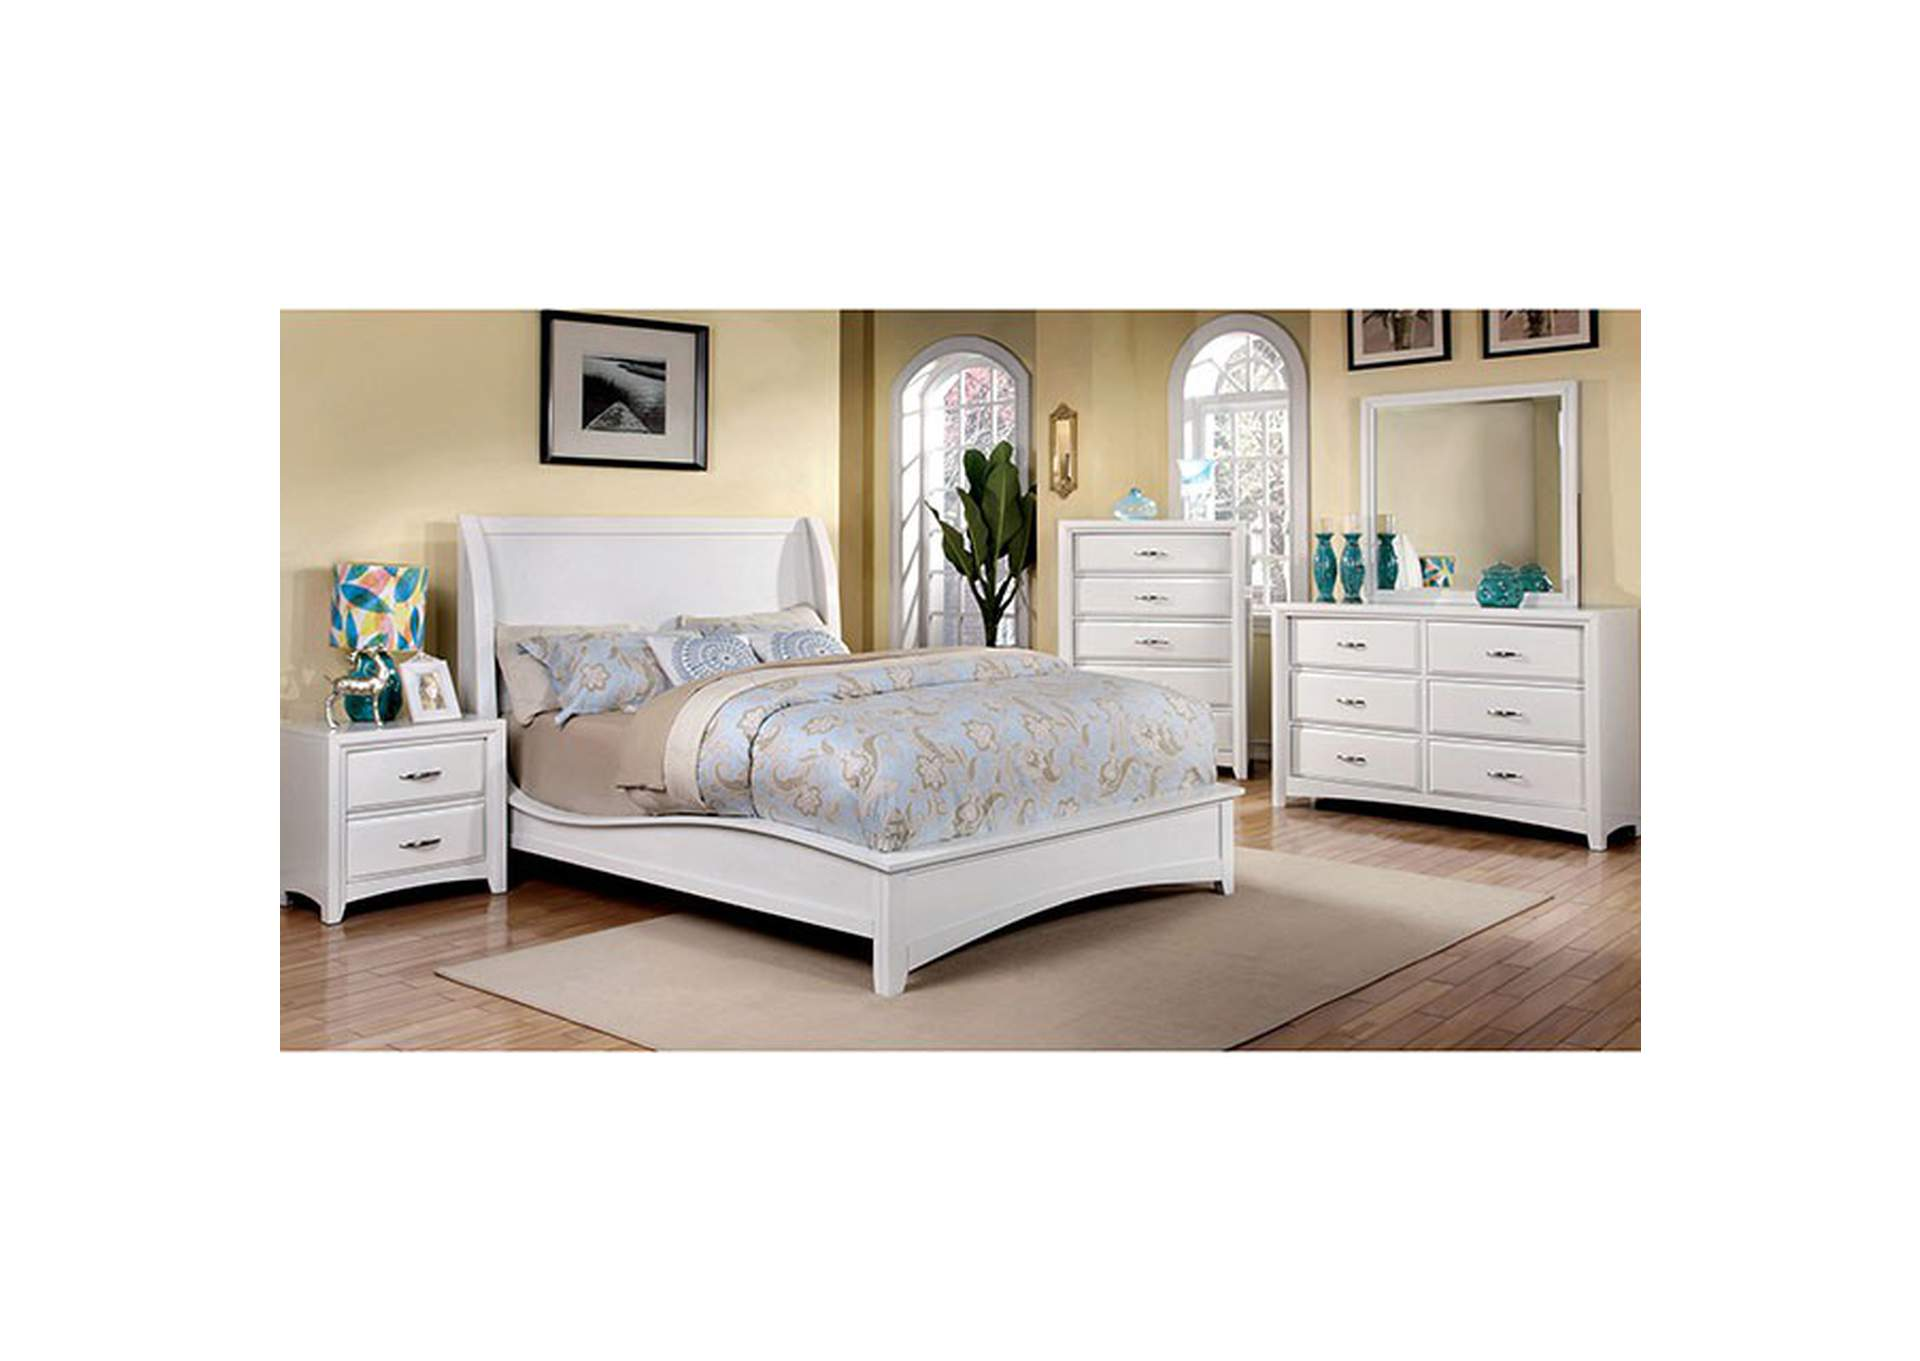 Delphie White Upholstered California King Bed,Furniture of America